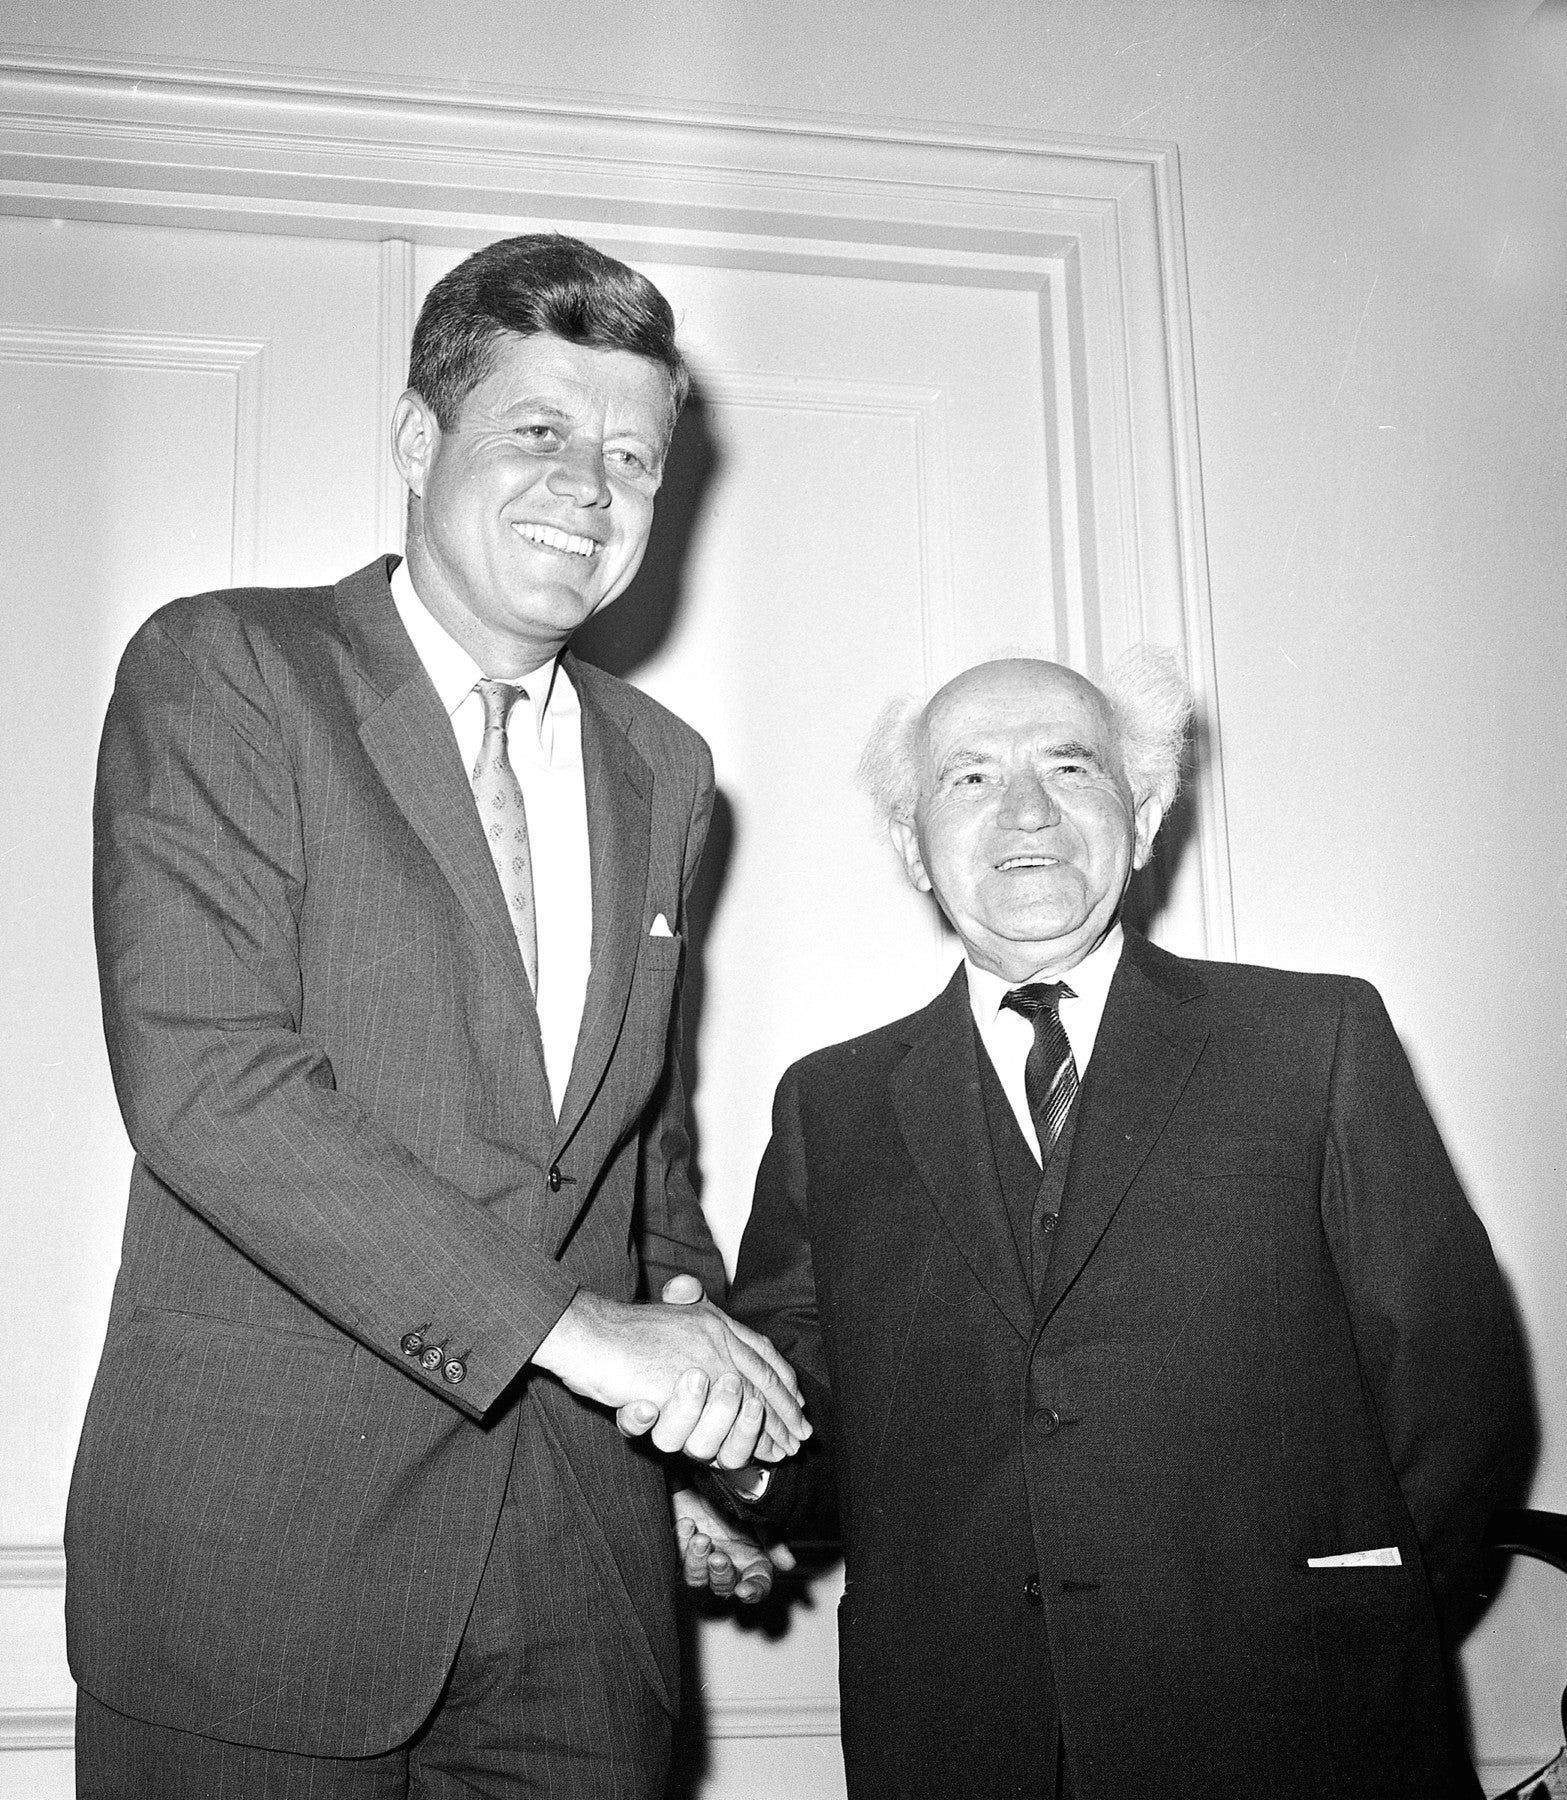 U.S. President John F. Kennedy meeting with Israeli Prime Minister David Ben-Gurion at the Waldorf Hotel in New York City, May 30,  1961.